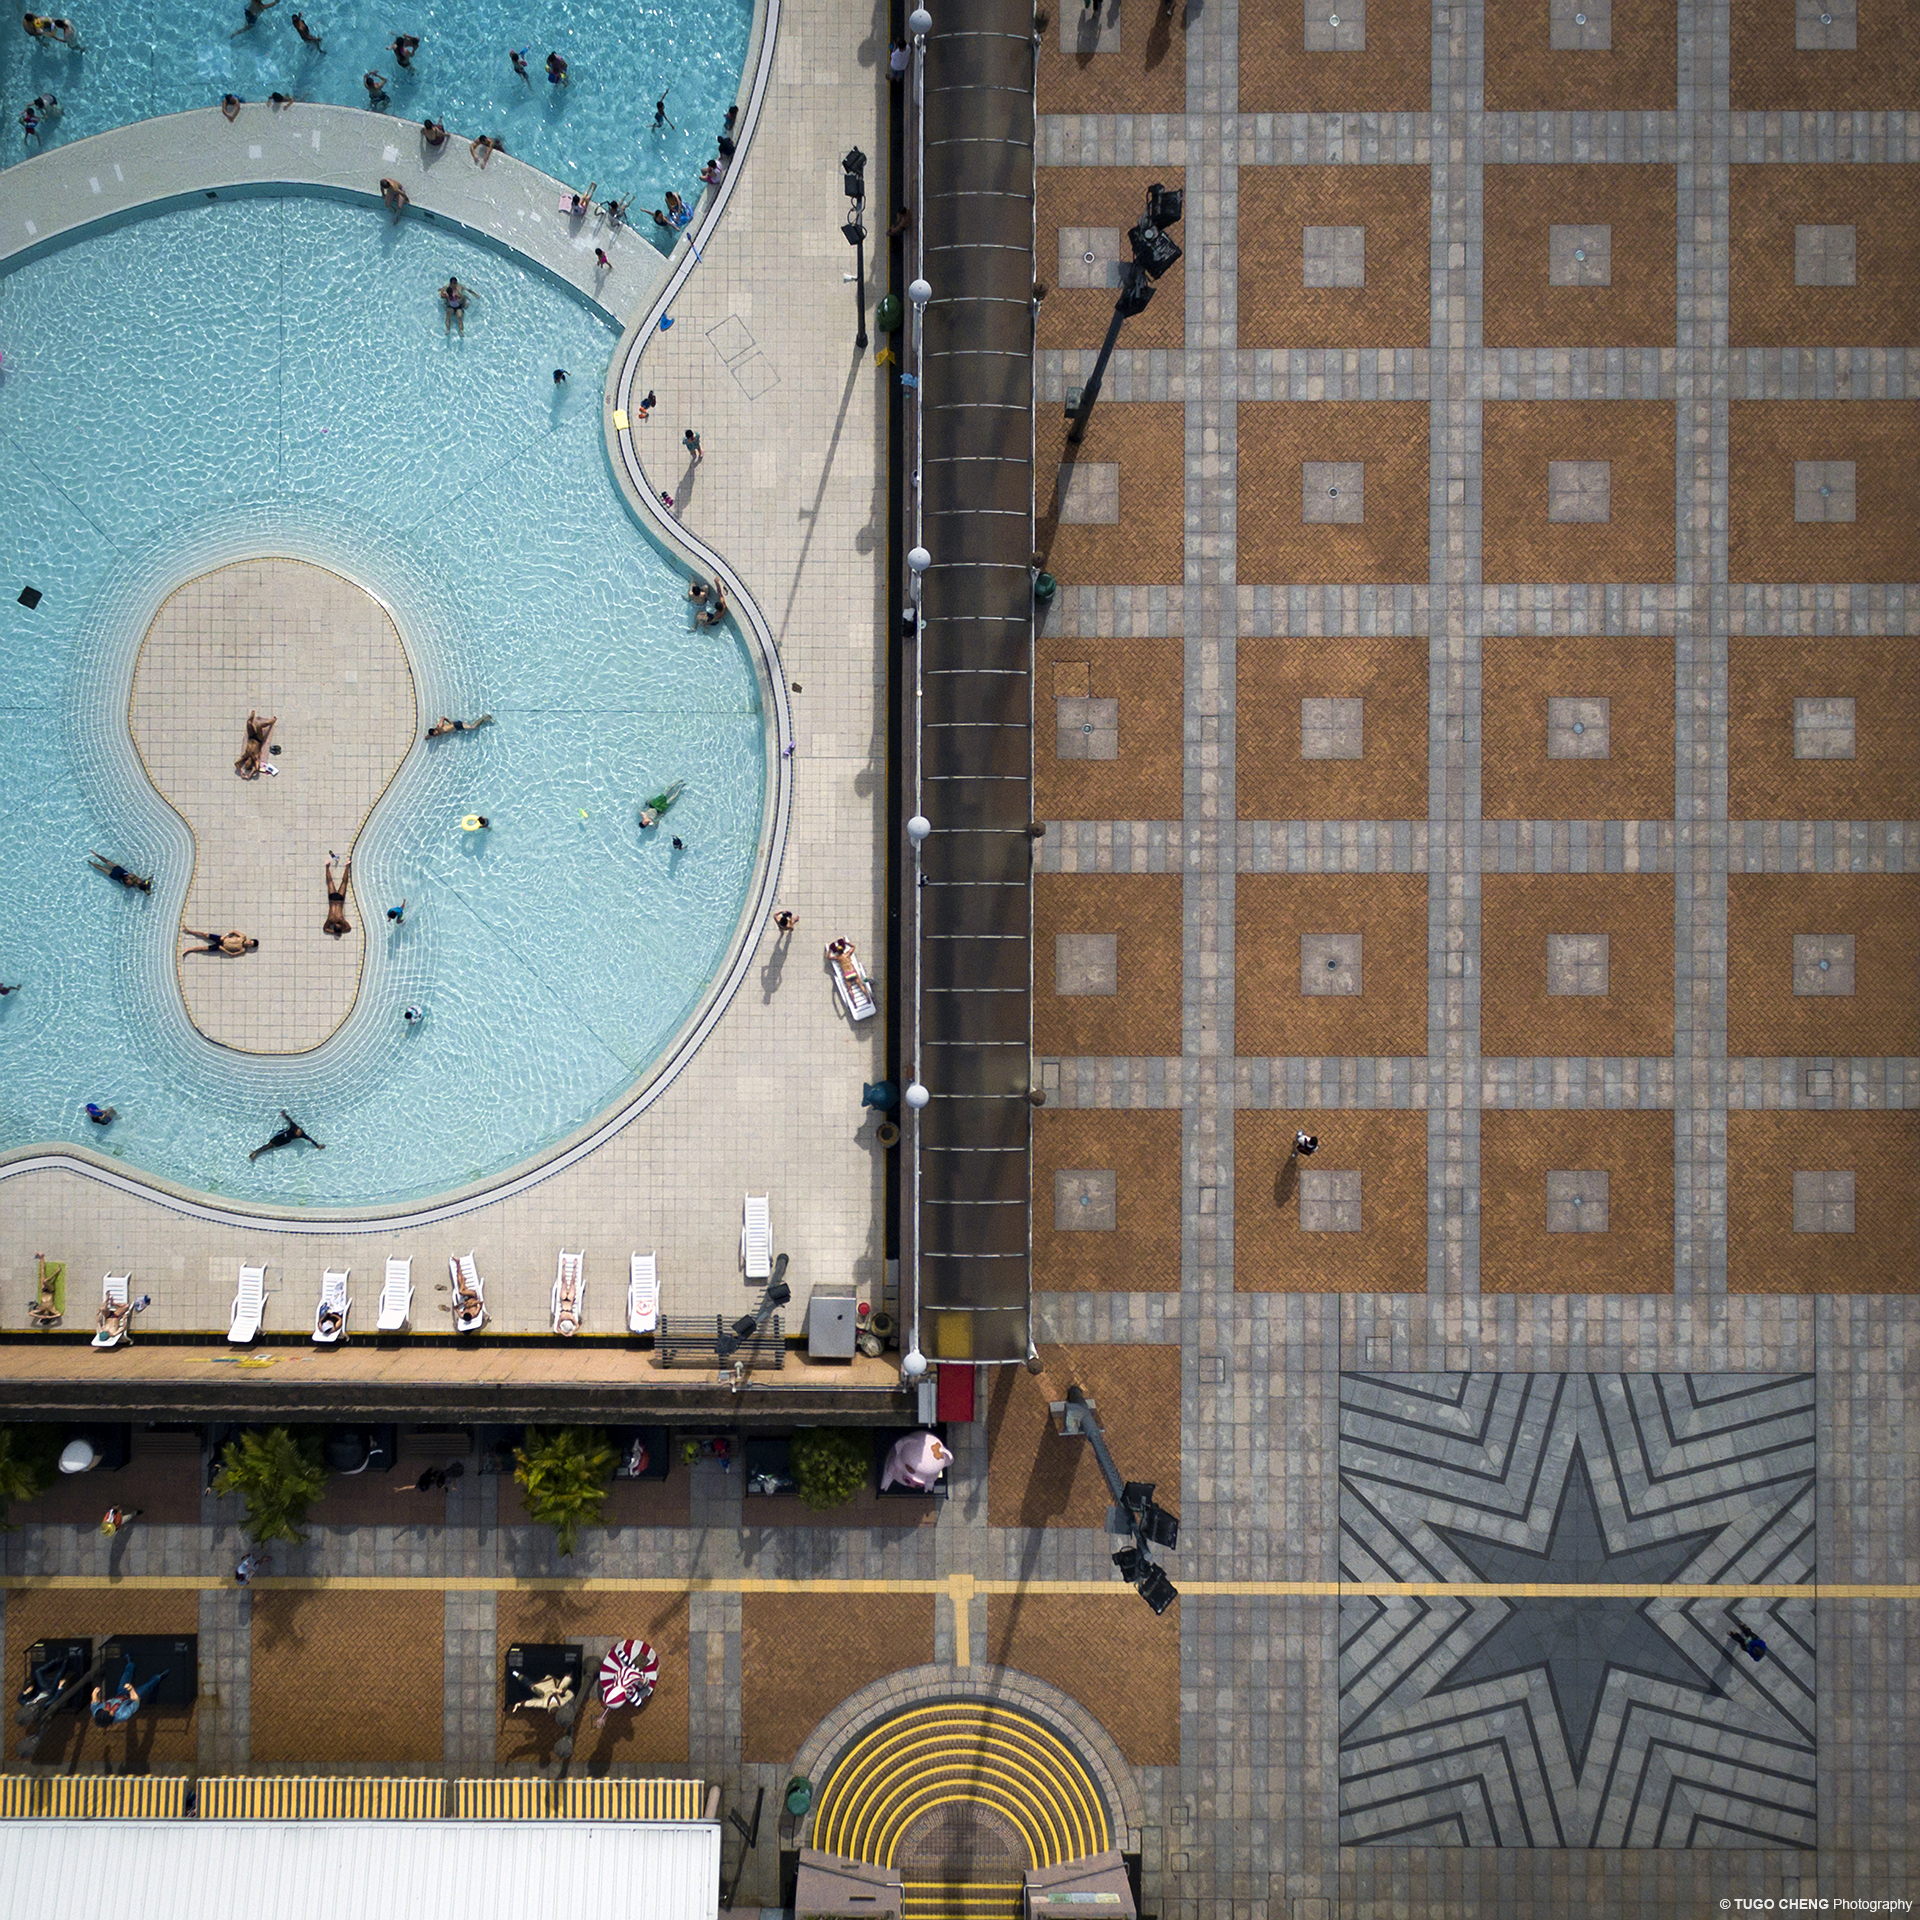 City Patterns #15_Pool side